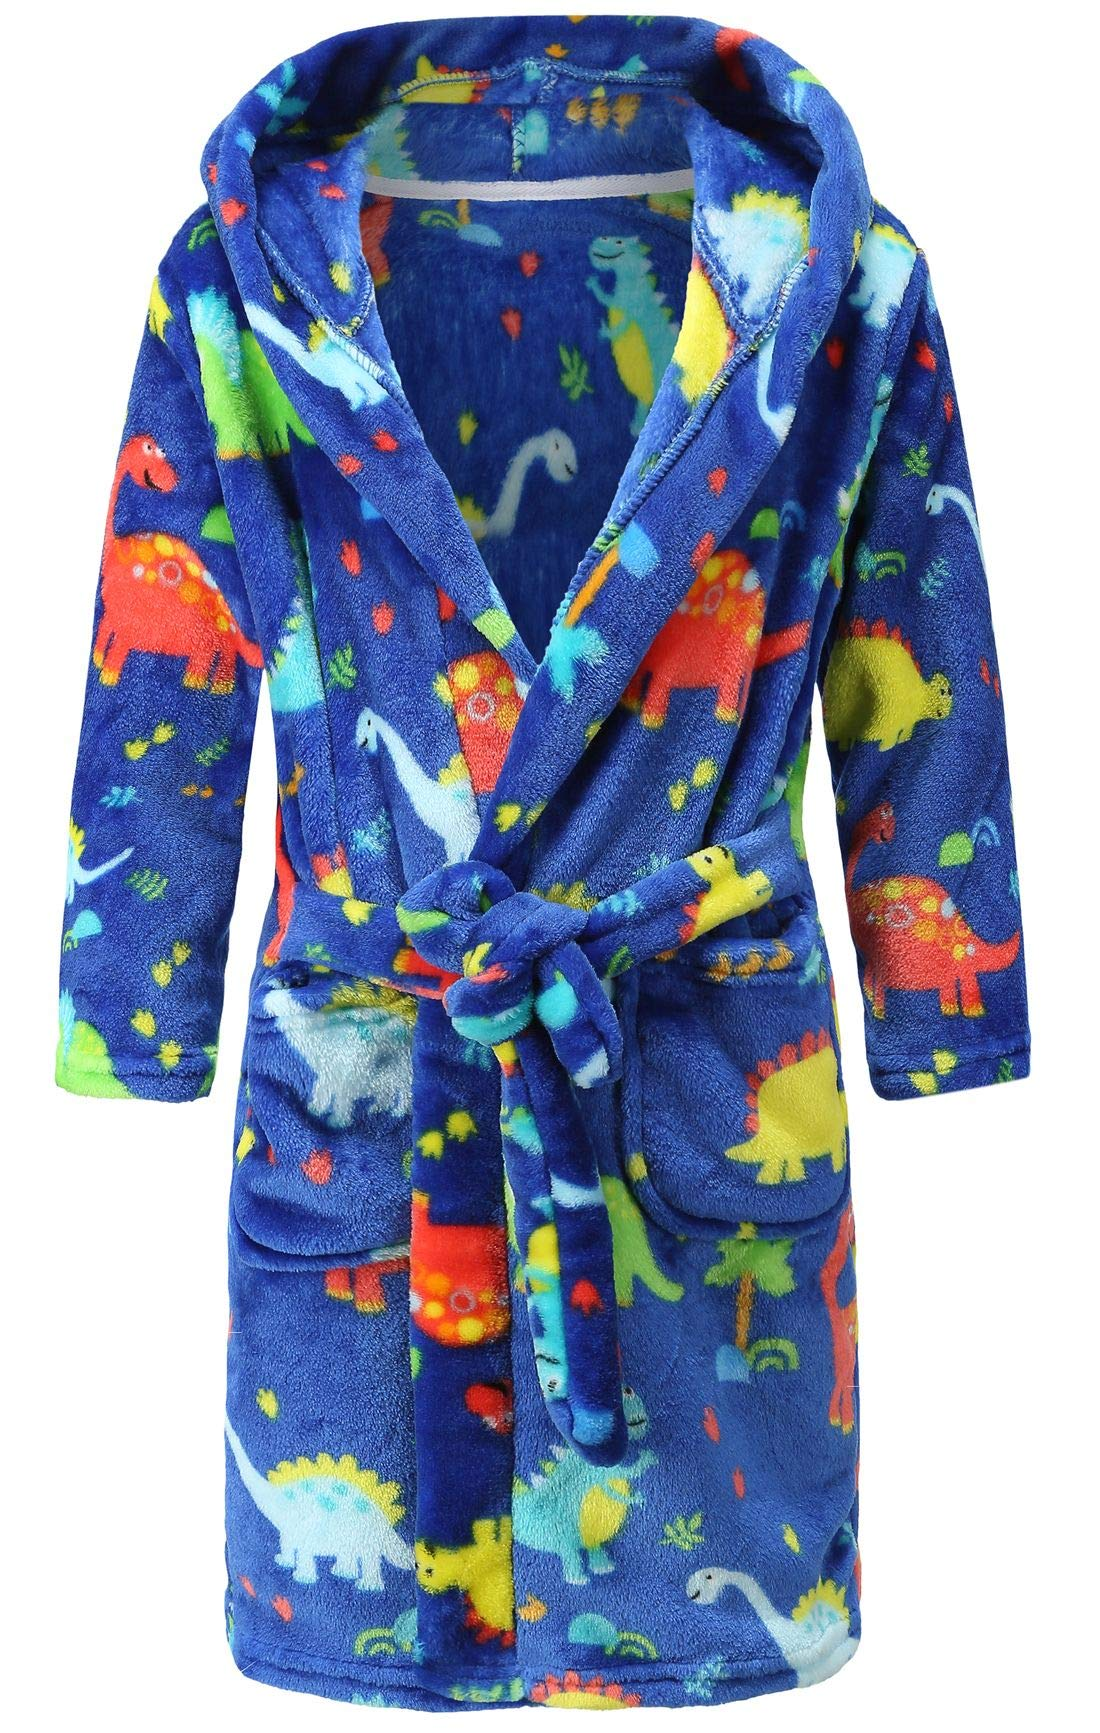 Image of Fun Blue Dinosaur Hooded Bath Robe for Boys and Toddlers